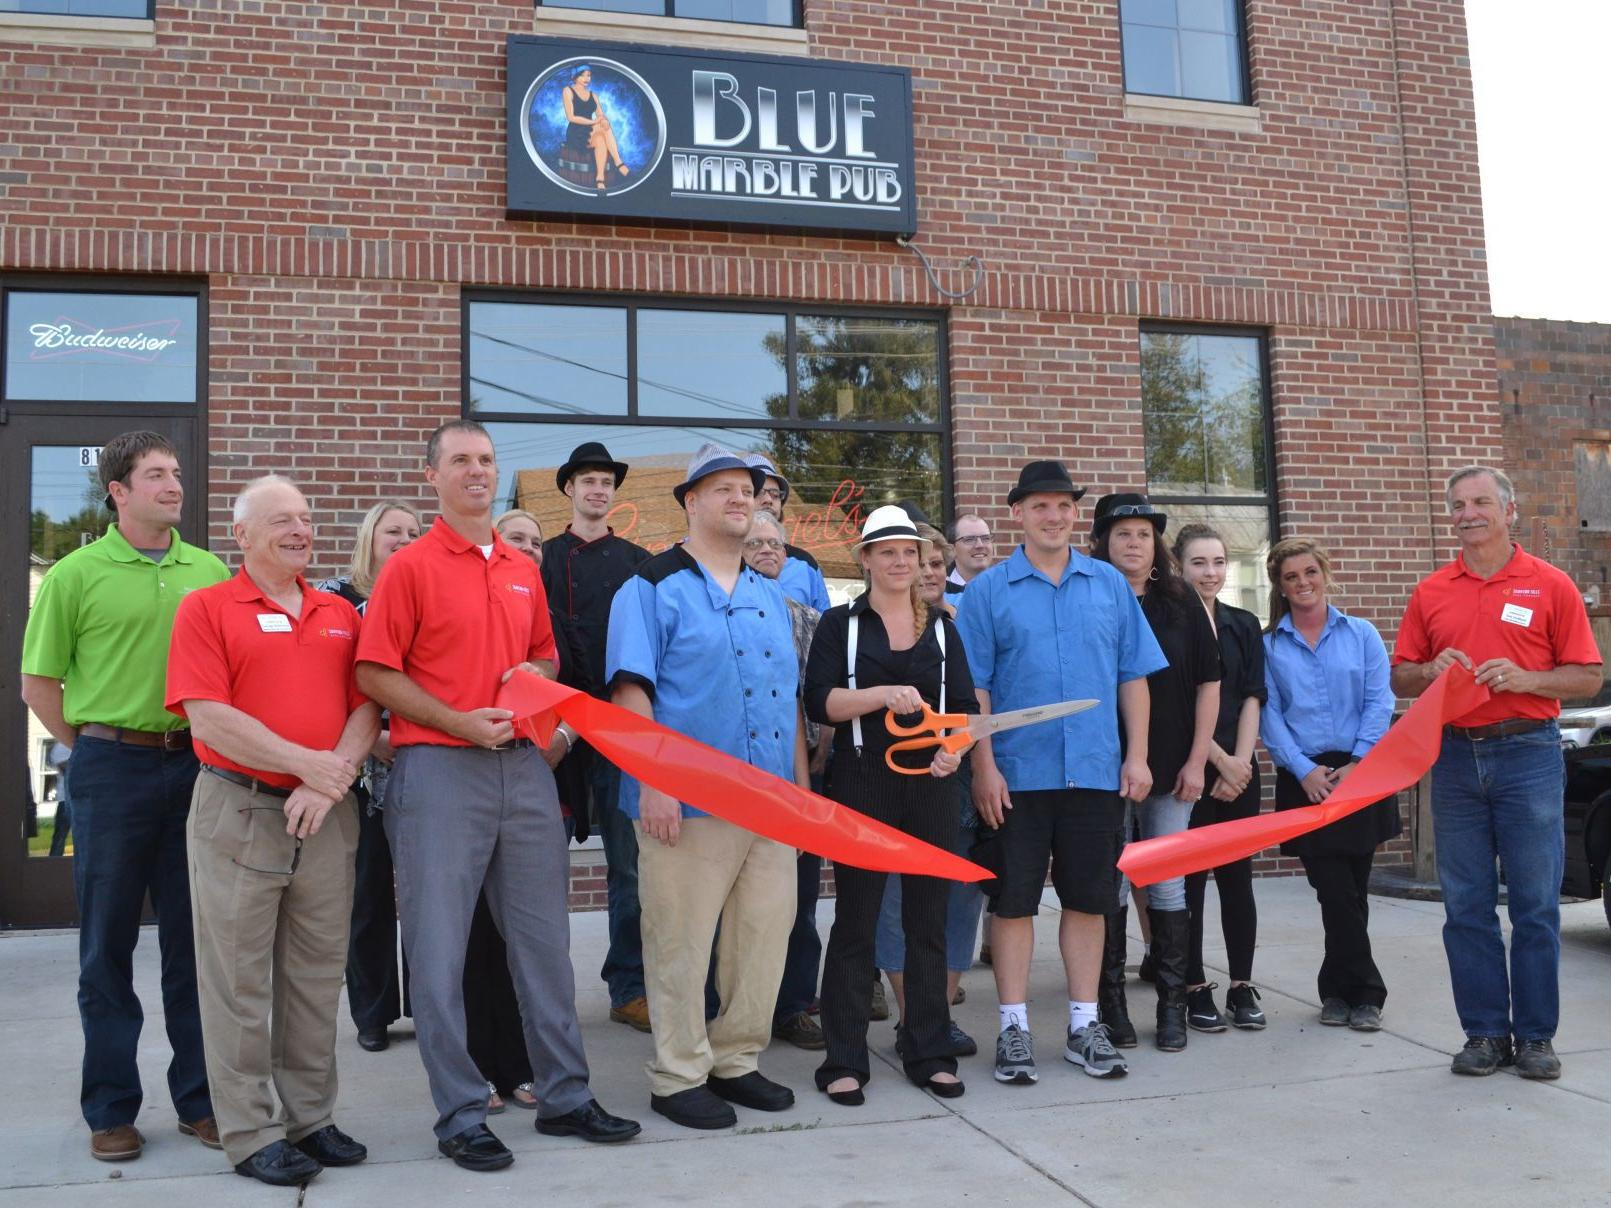 Third Time S The Charm Blue Marble Pub Opens In Chippewa Local News Chippewa Com